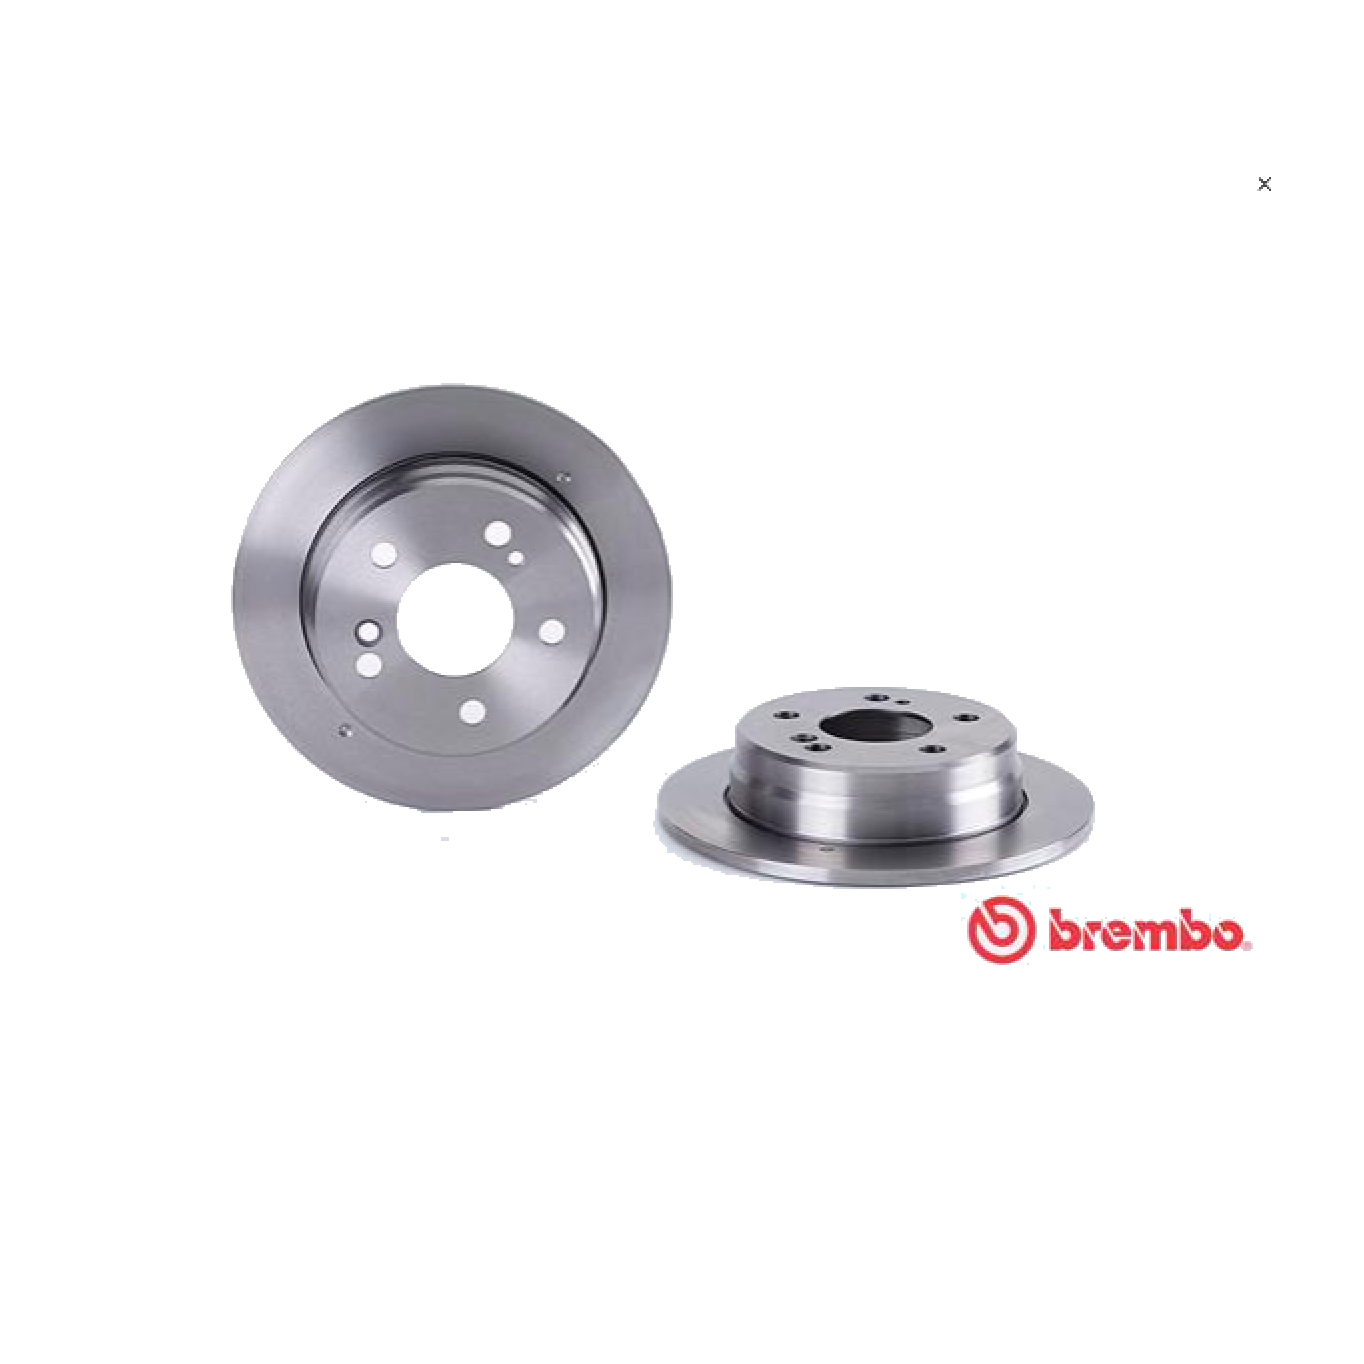 PAIR OF REAR BRAKE DISCS MERCEDES 190 W201 - BREMBO COUPE 'FOR A2014230912